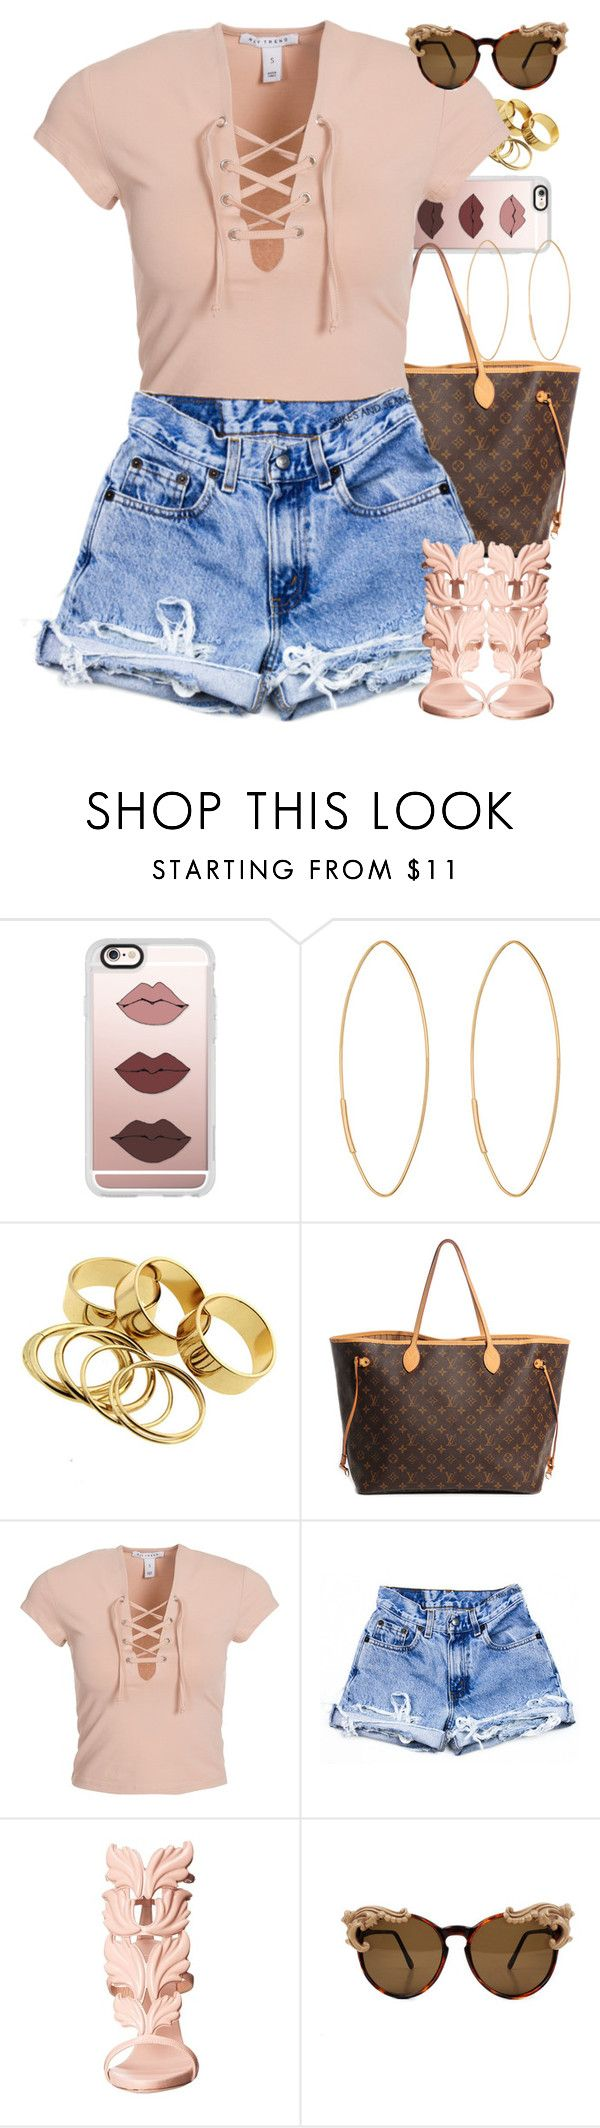 """Untitled #1560"" by power-beauty ❤ liked on Polyvore featuring Casetify, Lana, Louis Vuitton, NLY Trend and Giuseppe Zanotti"